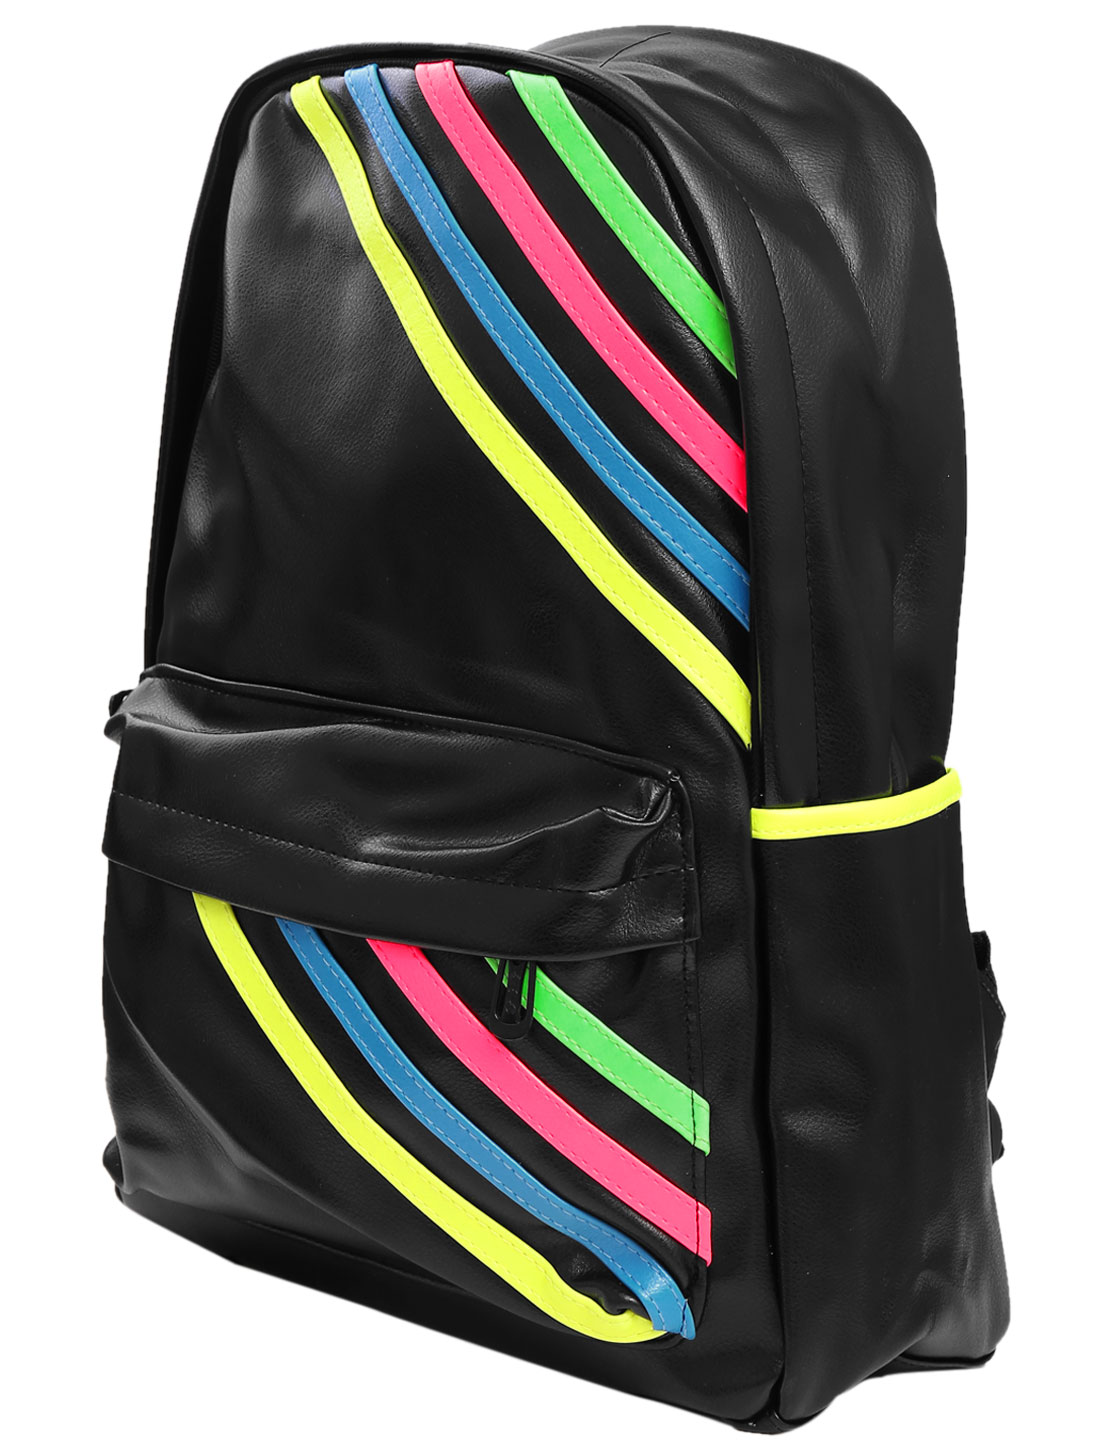 Man Zip Up Closure Imitation Leather Stripes Print Backpack Black